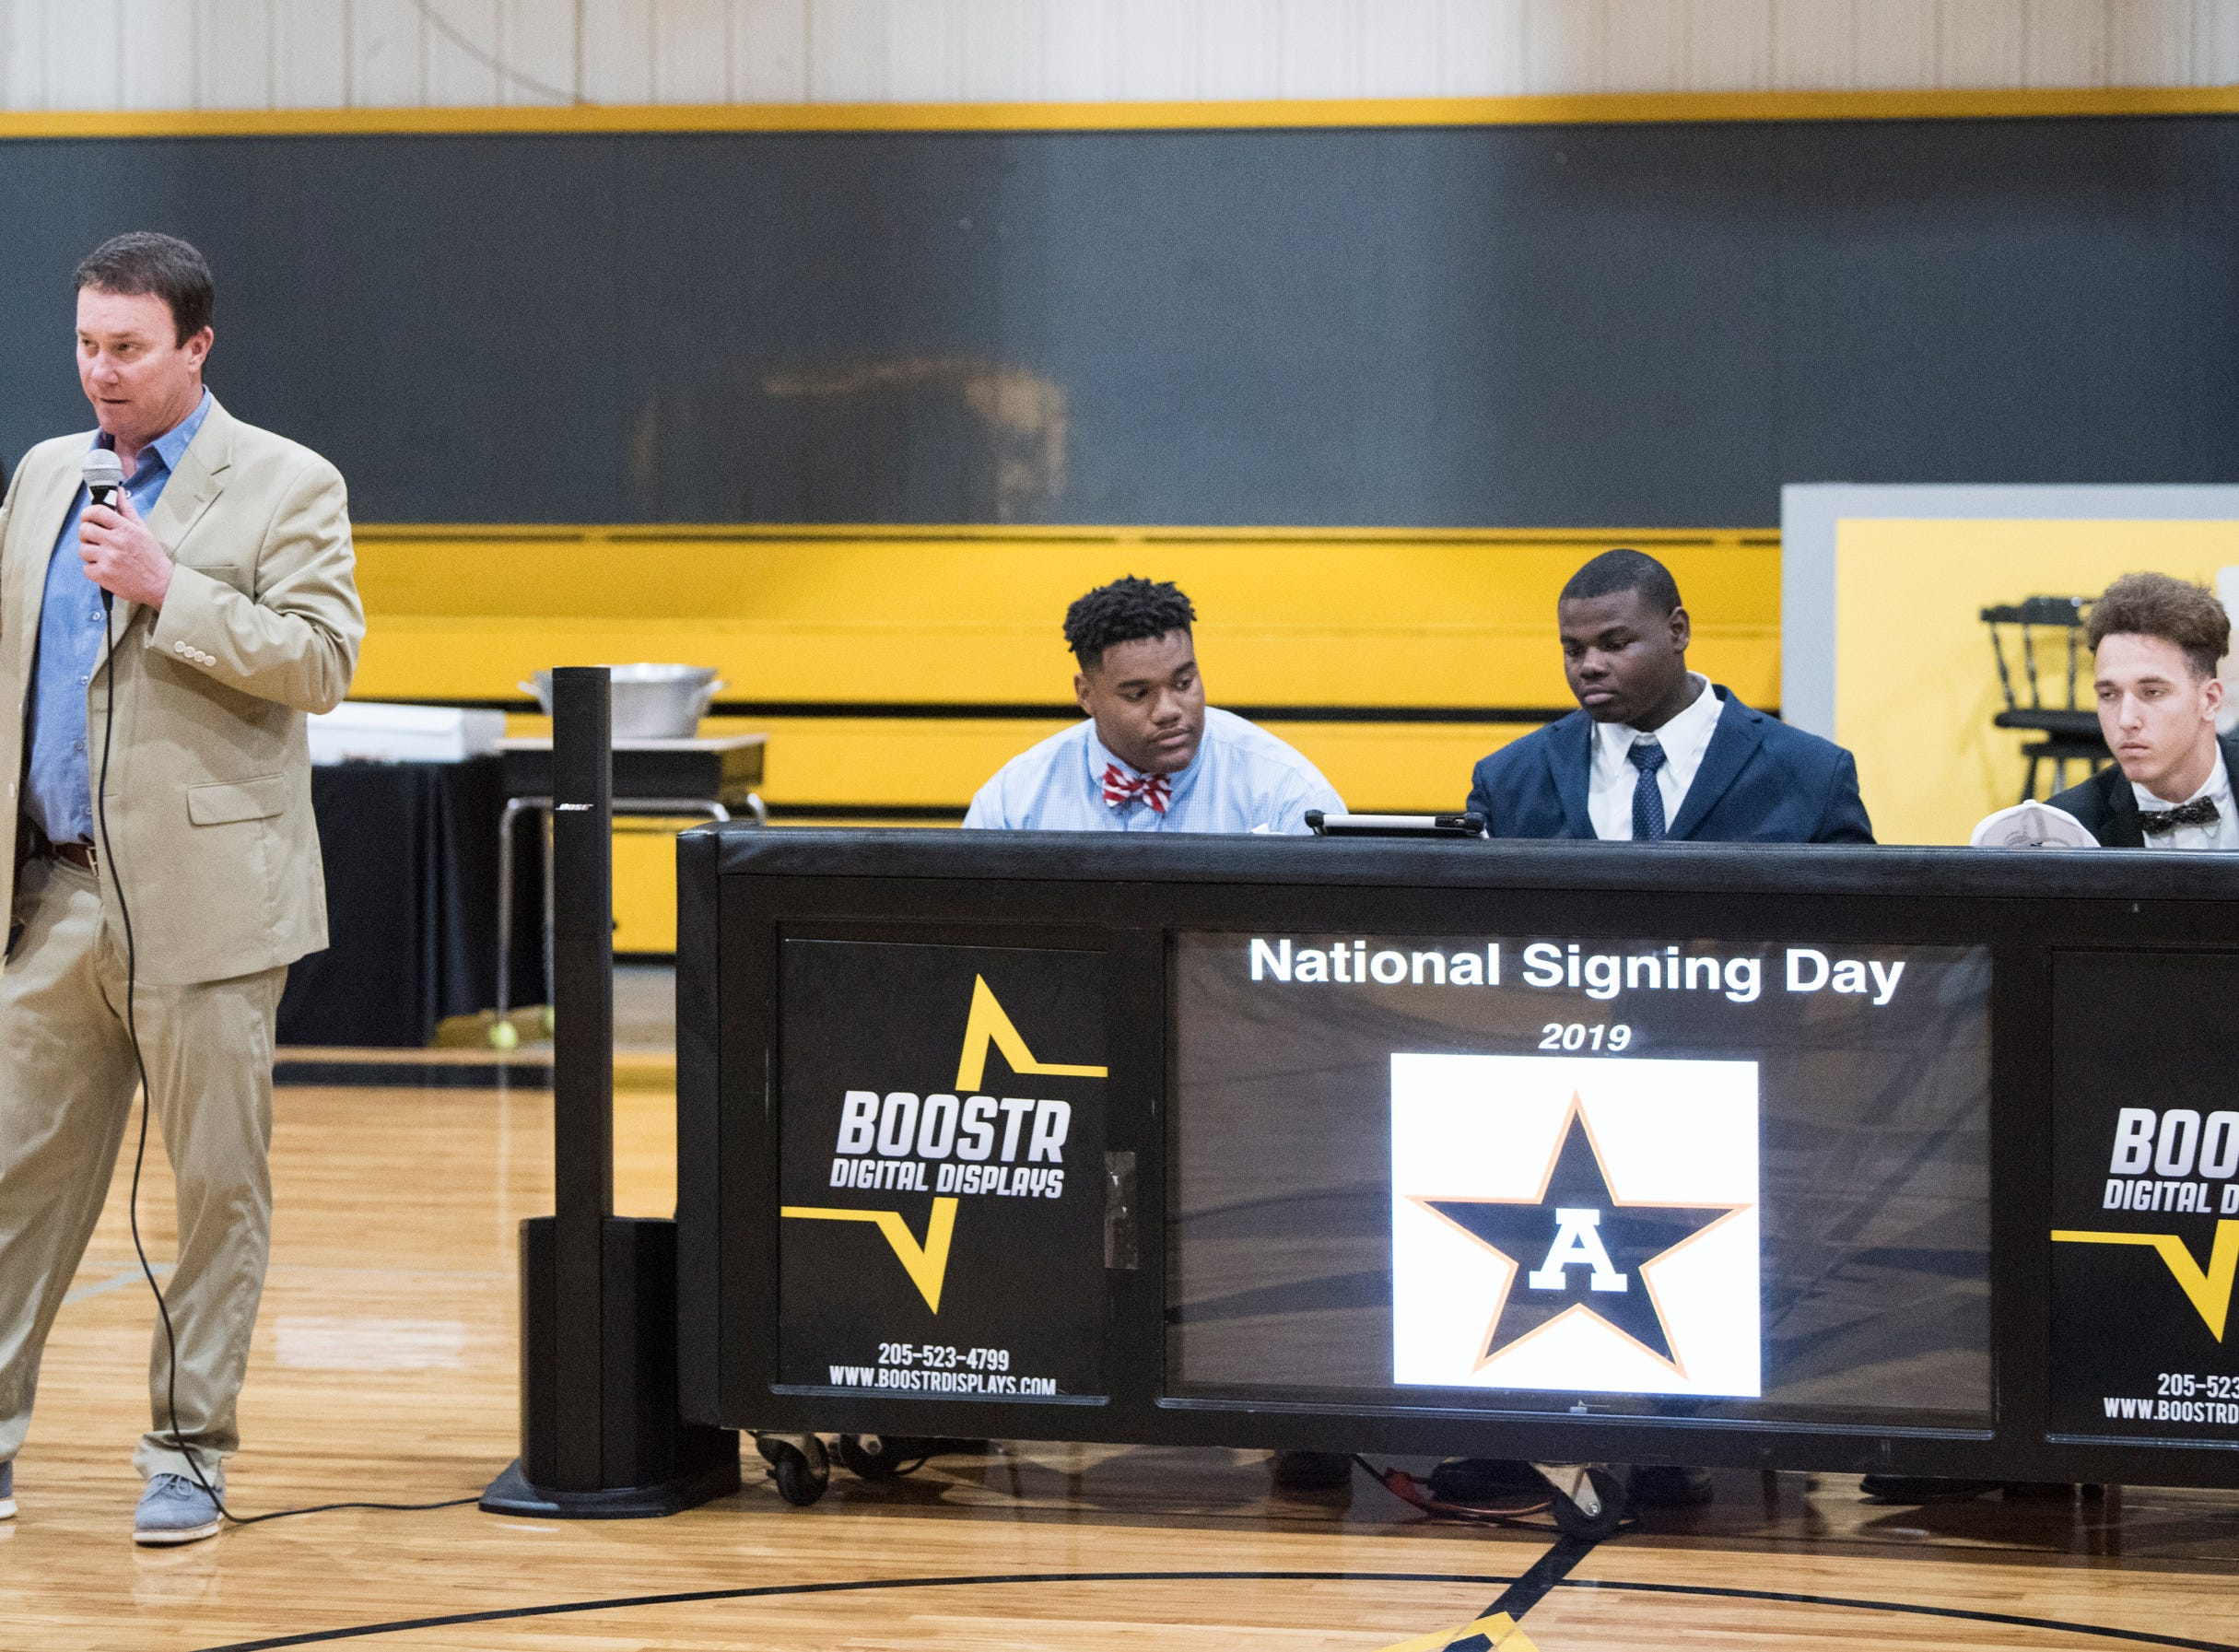 Coach Bobby Carr talks about his players during signing day at Autauga Academy Prattville, Ala., on Wednesday, Feb. 6, 2019.